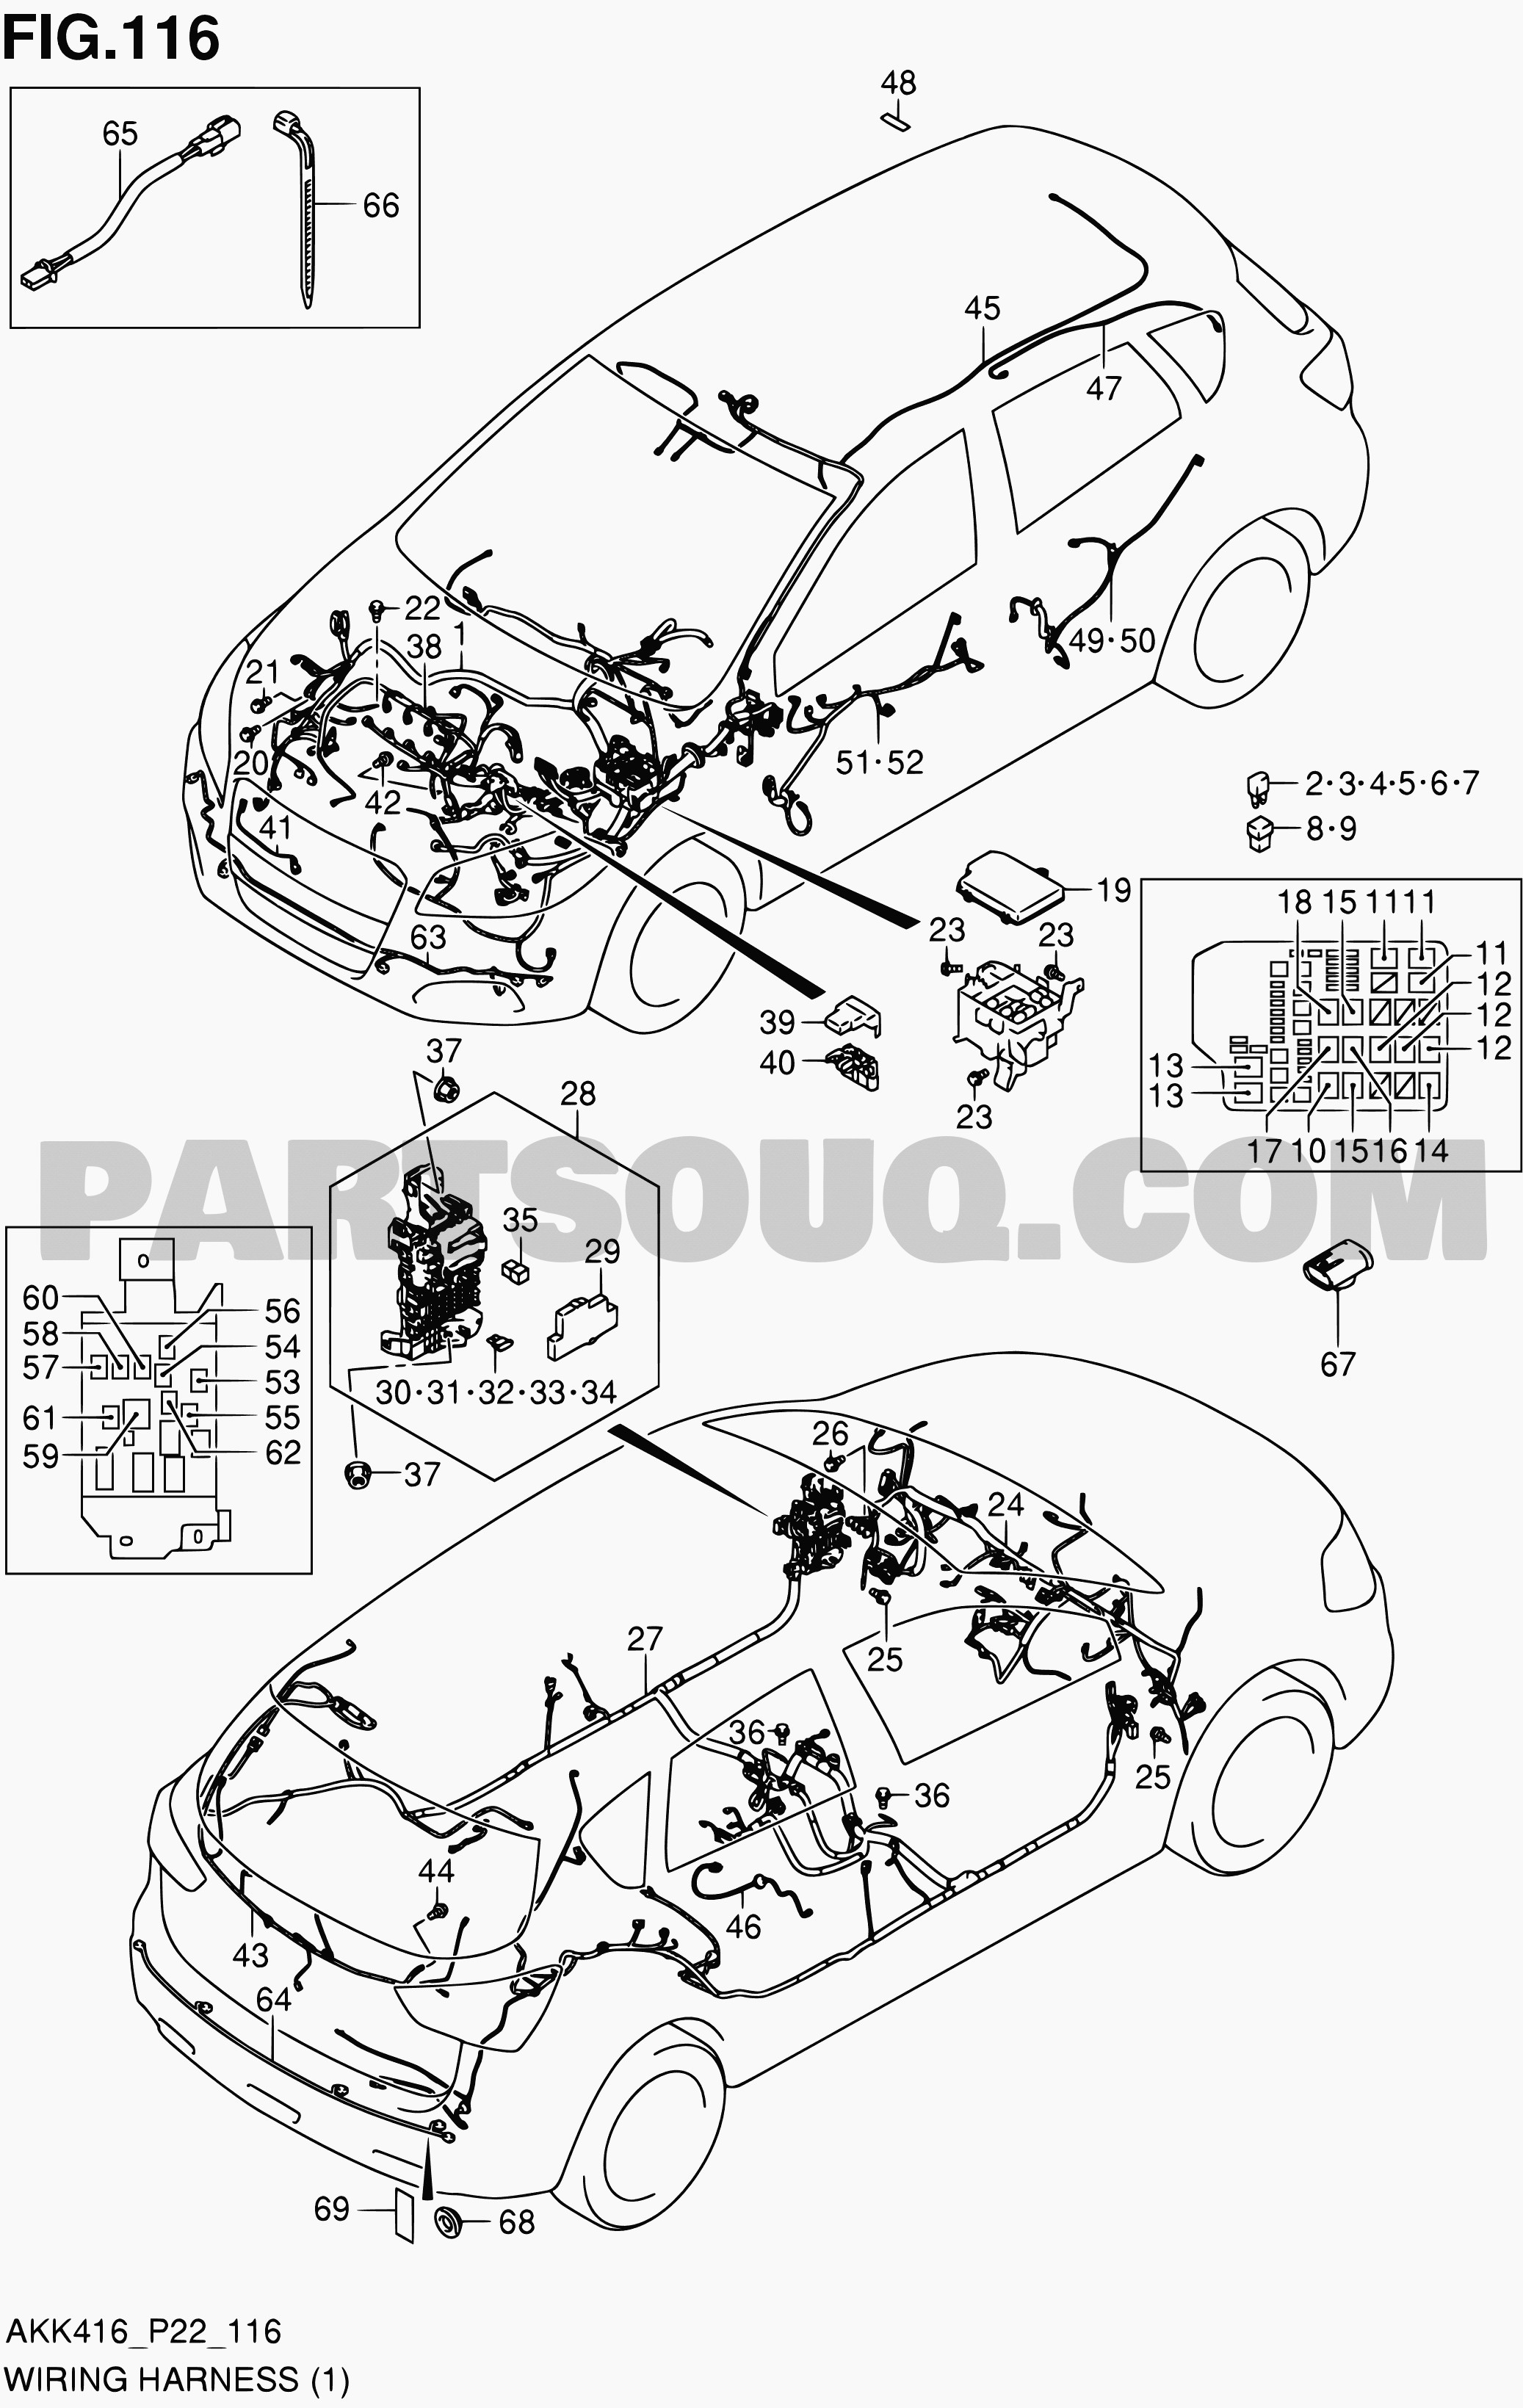 2006 scion tc engine diagram exterior car parts diagram 116 wiring harness m16a lhd sx4 m16a